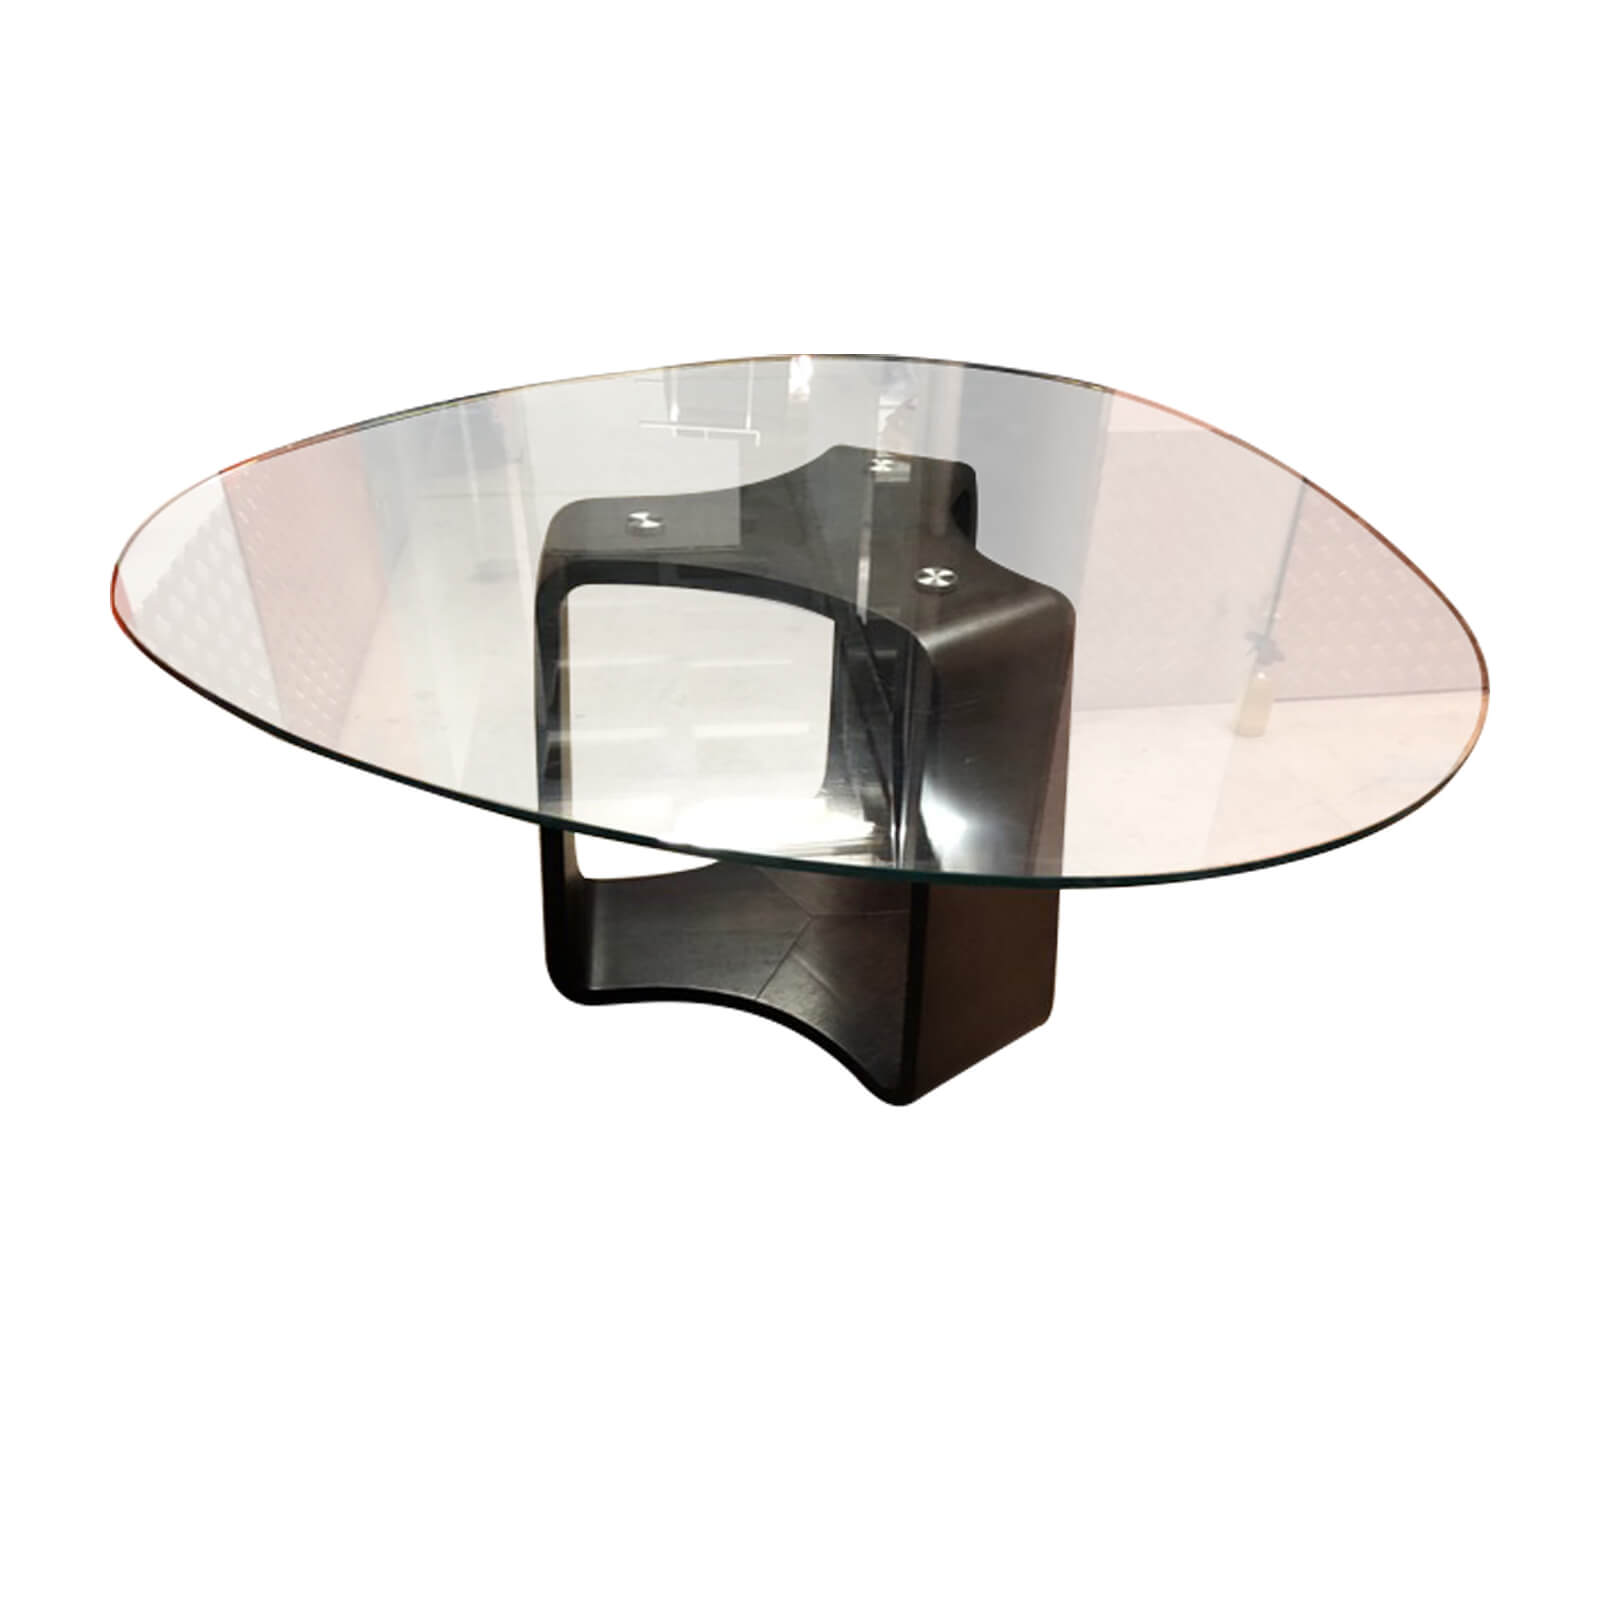 Two Design Lovers Contemporary Glass Dining Table